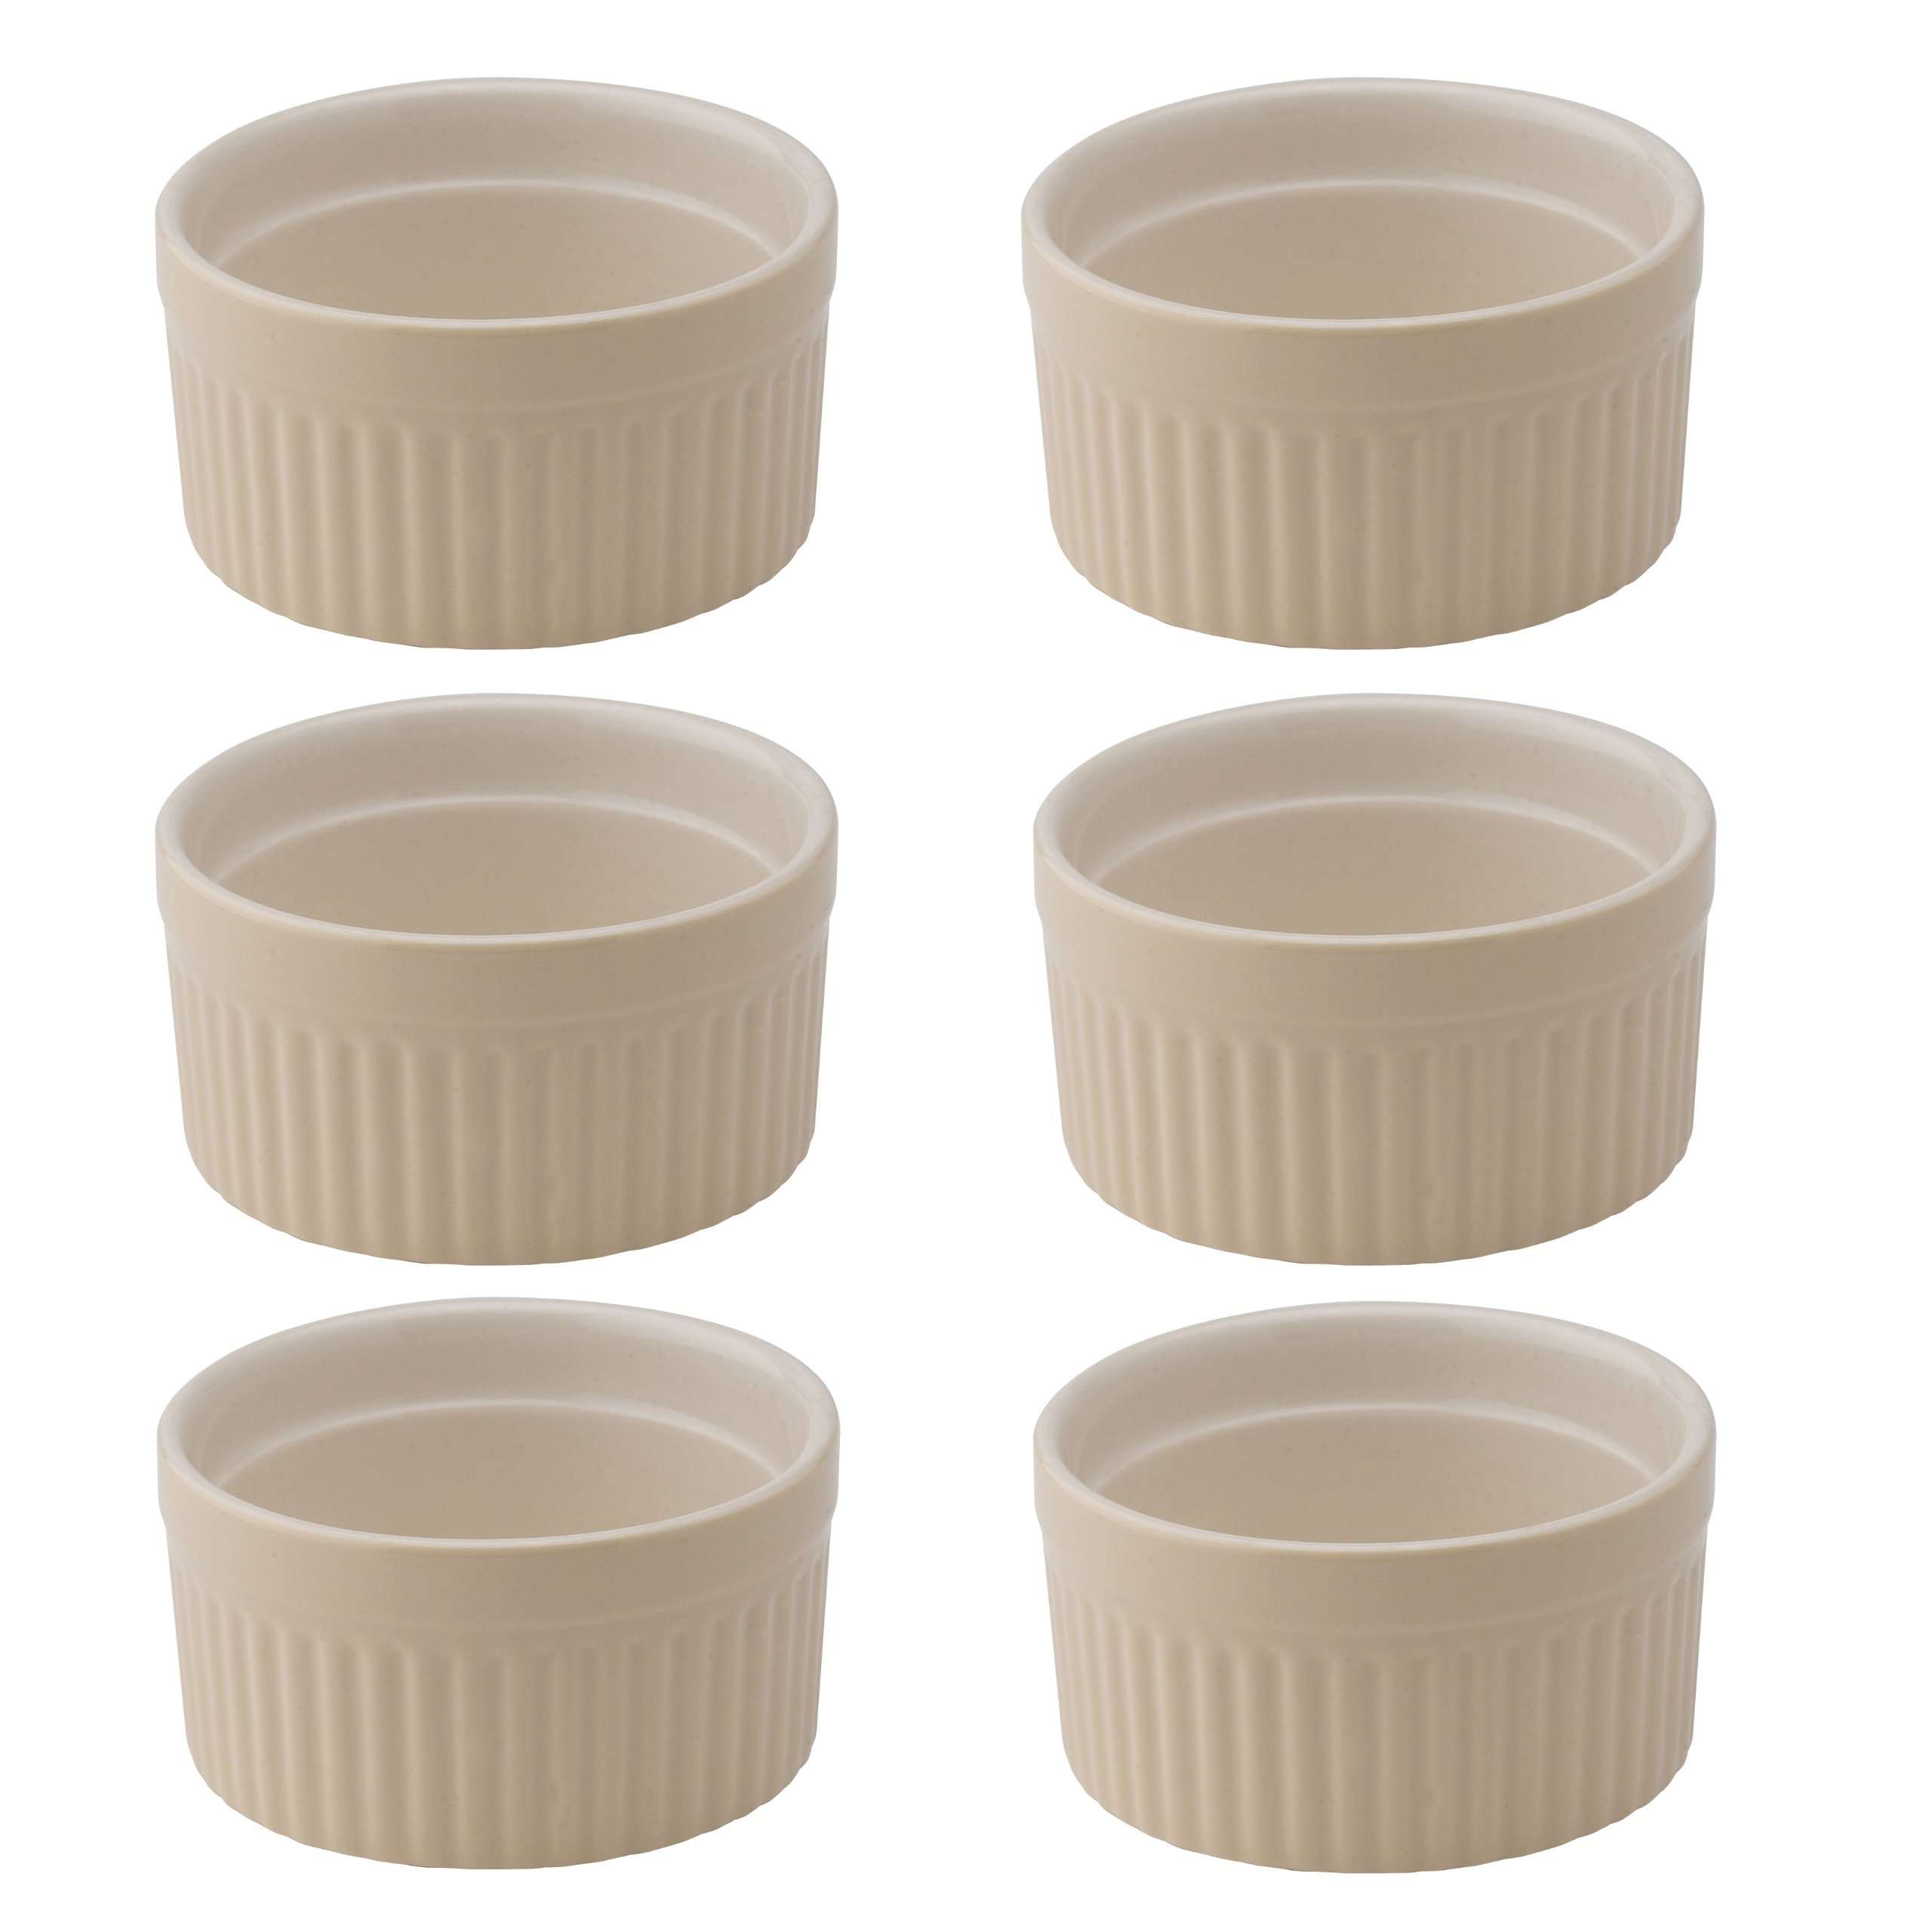 Mrs. Anderson's Baking Ramekin, Ceramic Earthenware, Wheat, 2.5-Inch, 2-Ounce Capacity